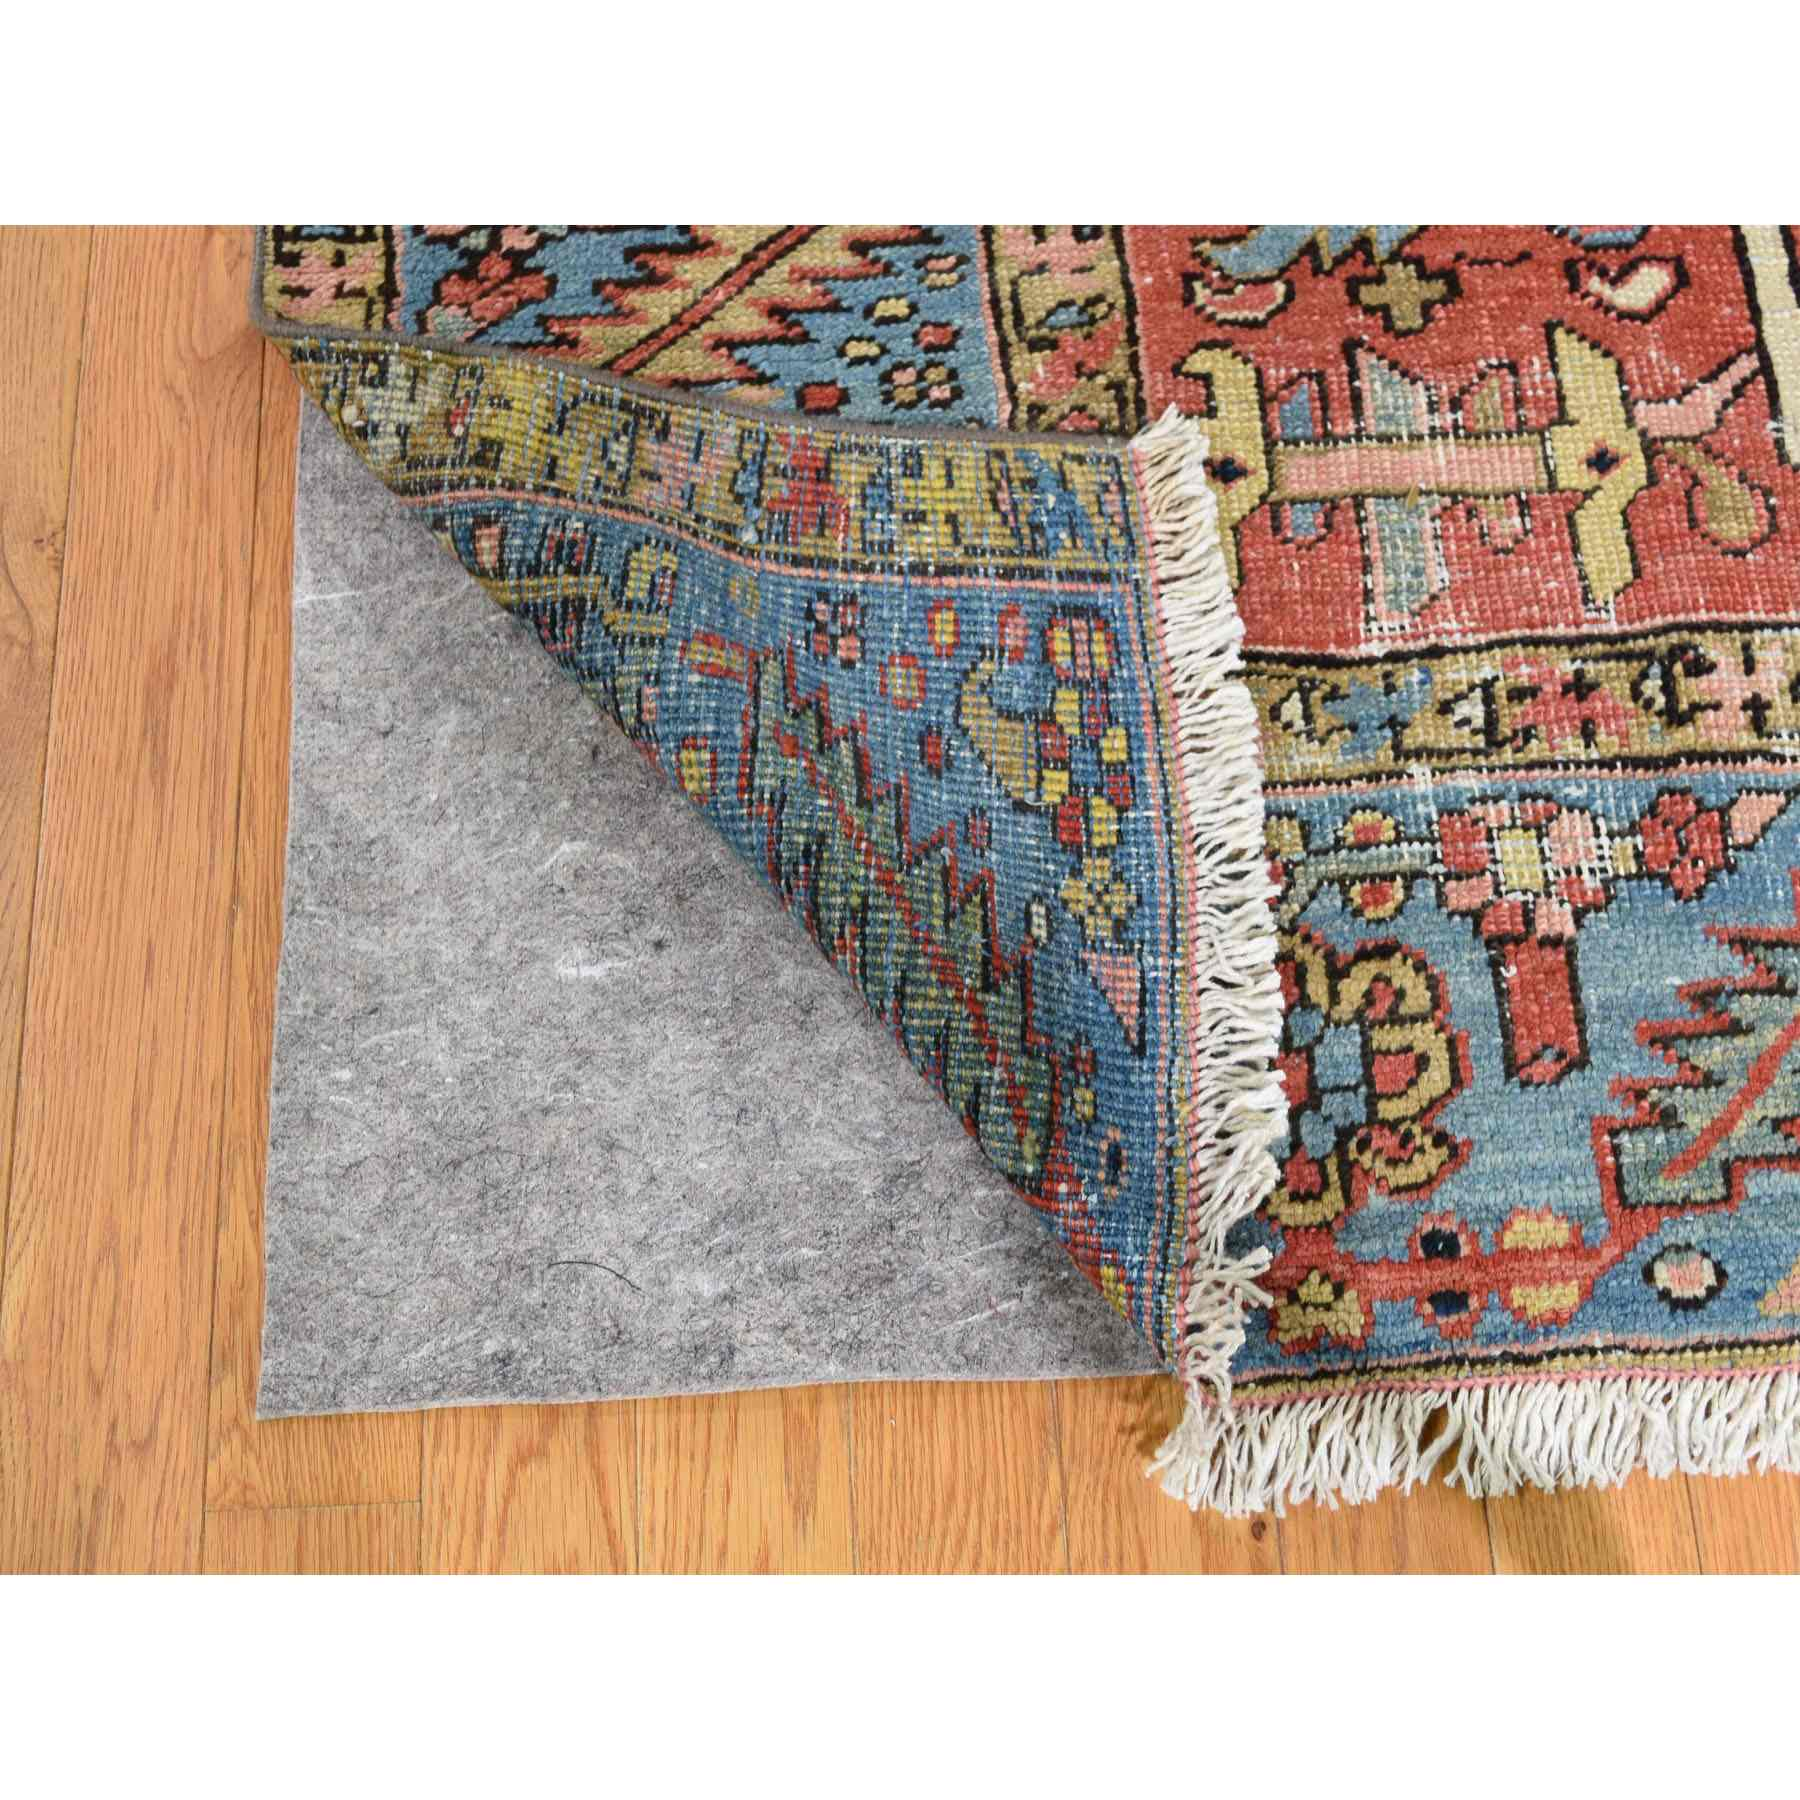 Antique-Hand-Knotted-Rug-237135